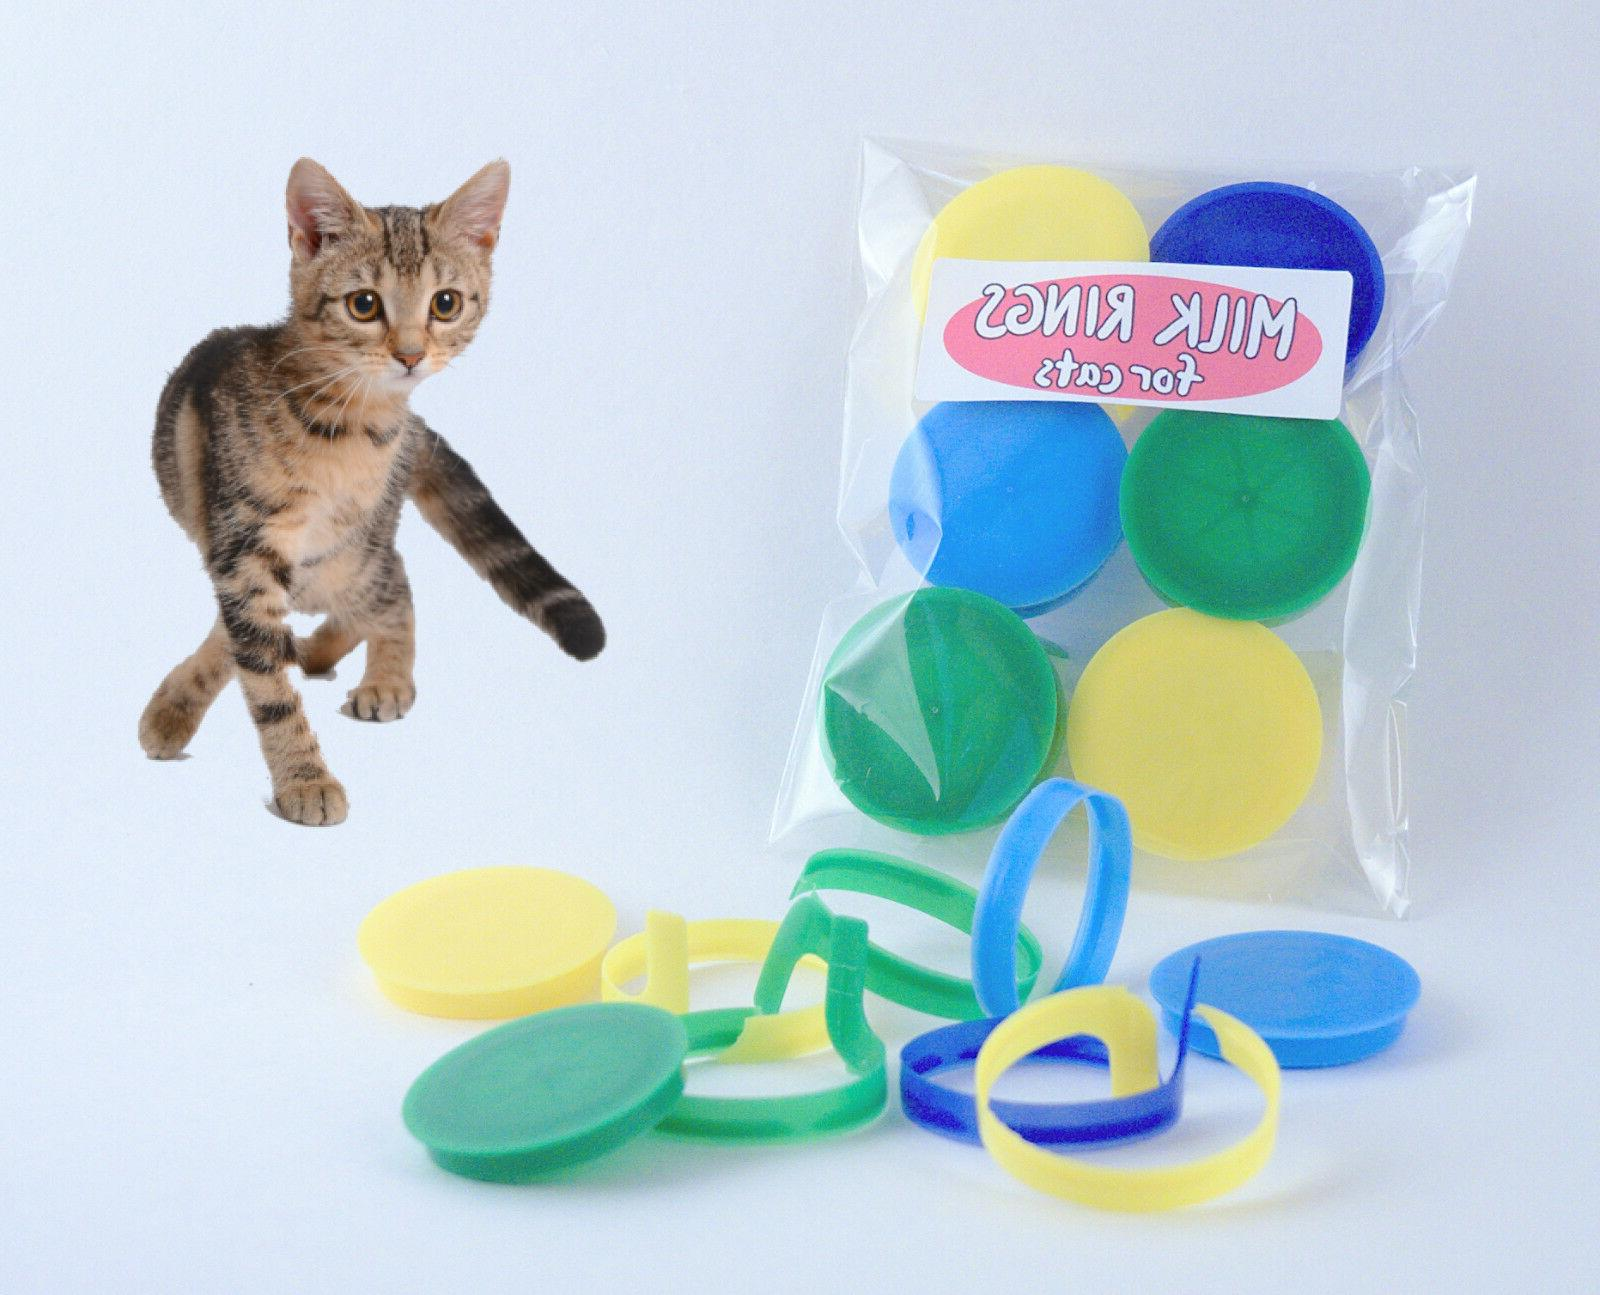 milk cap toy for cats with irresistable